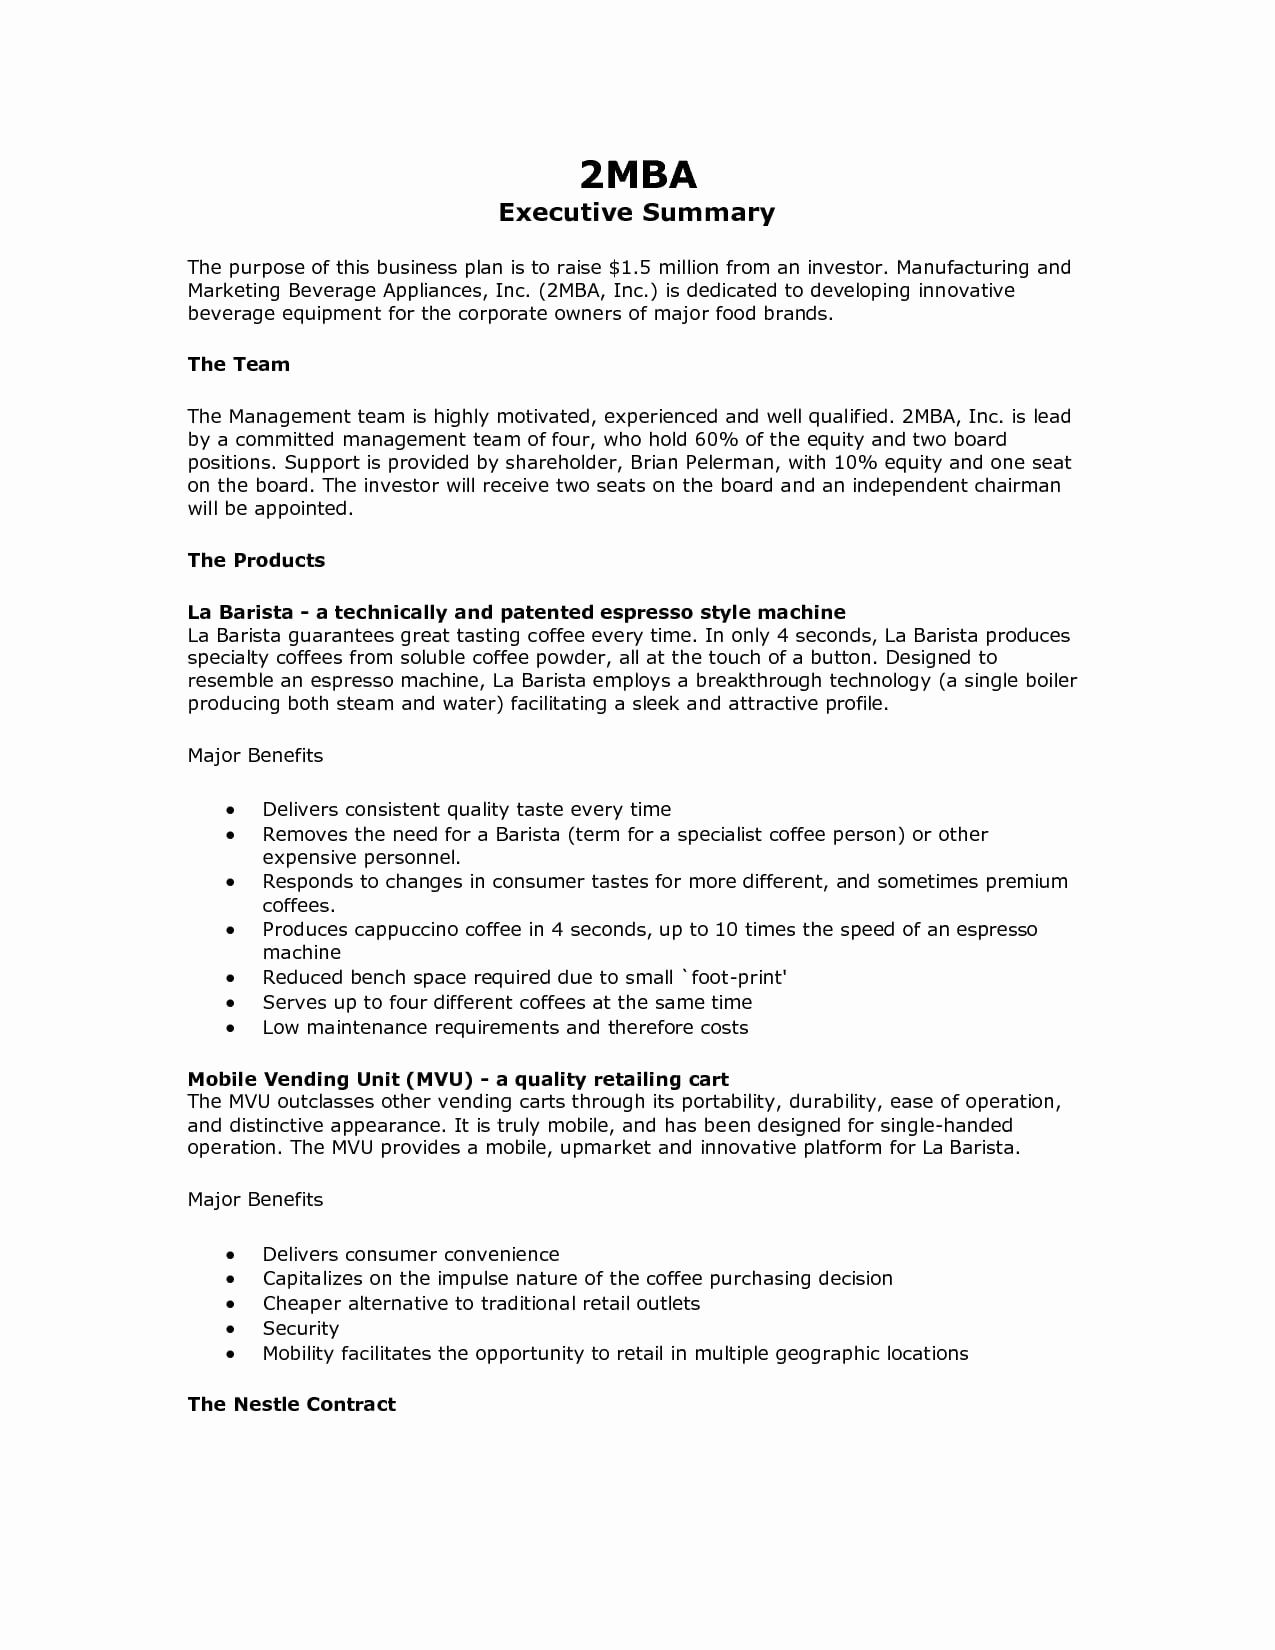 Marketing Plan Executive Summary Luxury 9 Executive Summary Marketing Plan Examples Pdf Word